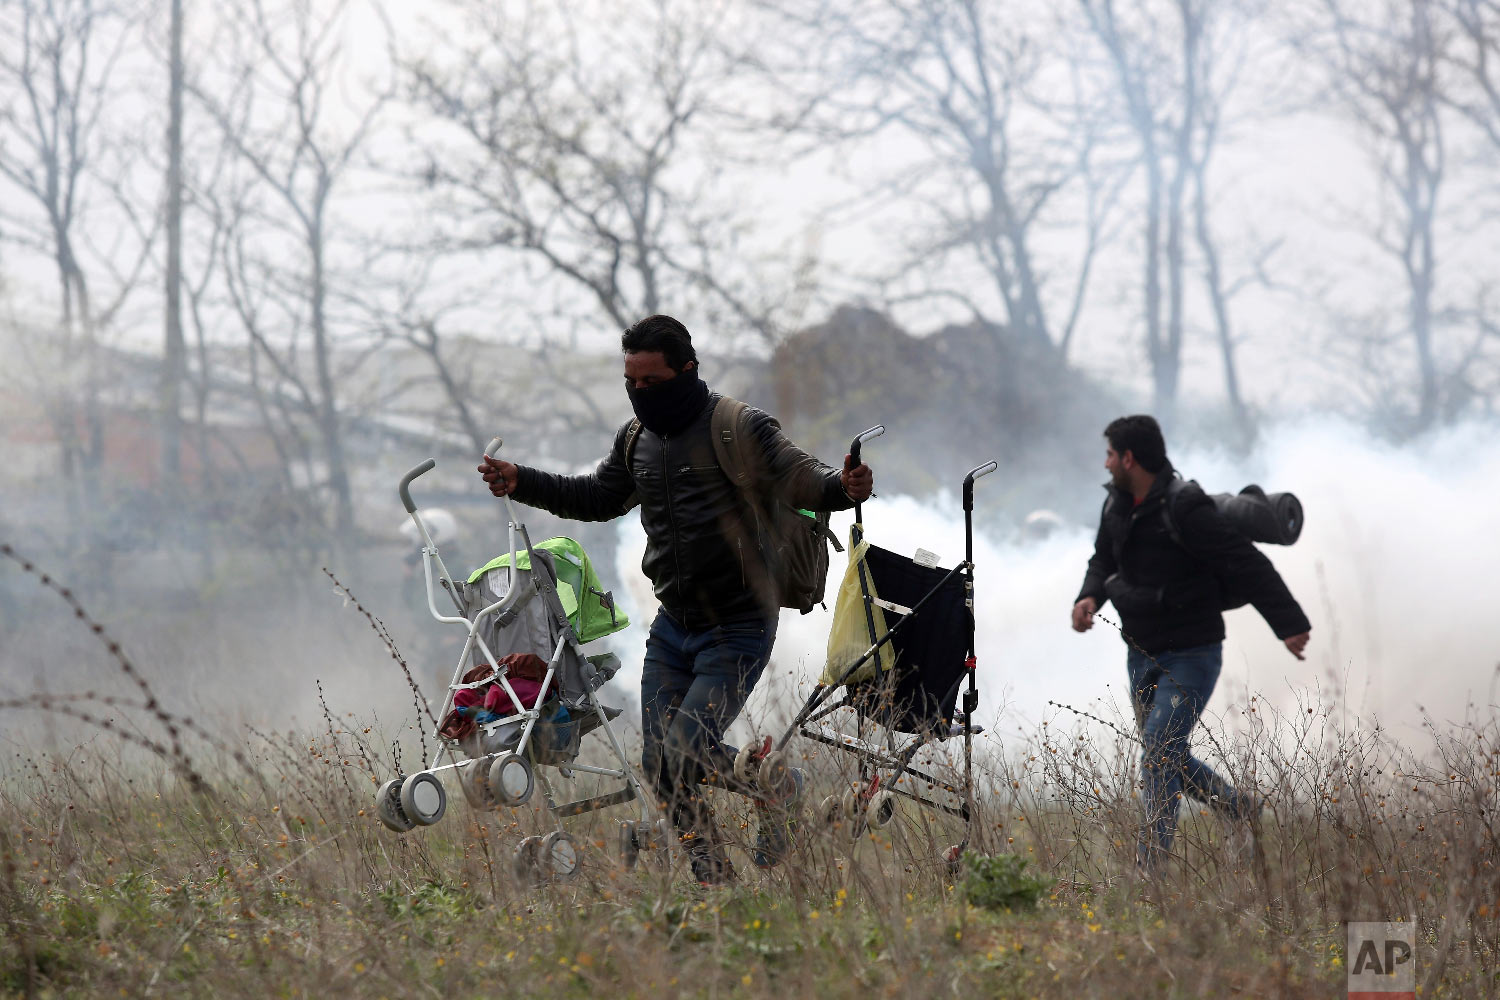 A man holding two baby strollers runs to avoid tear gas thrown by riot police during clashes outside a refugee camp in the village of Diavata, west of Thessaloniki, northern Greece, Friday, April 5, 2019. (AP Photo/Giannis Papanikos)